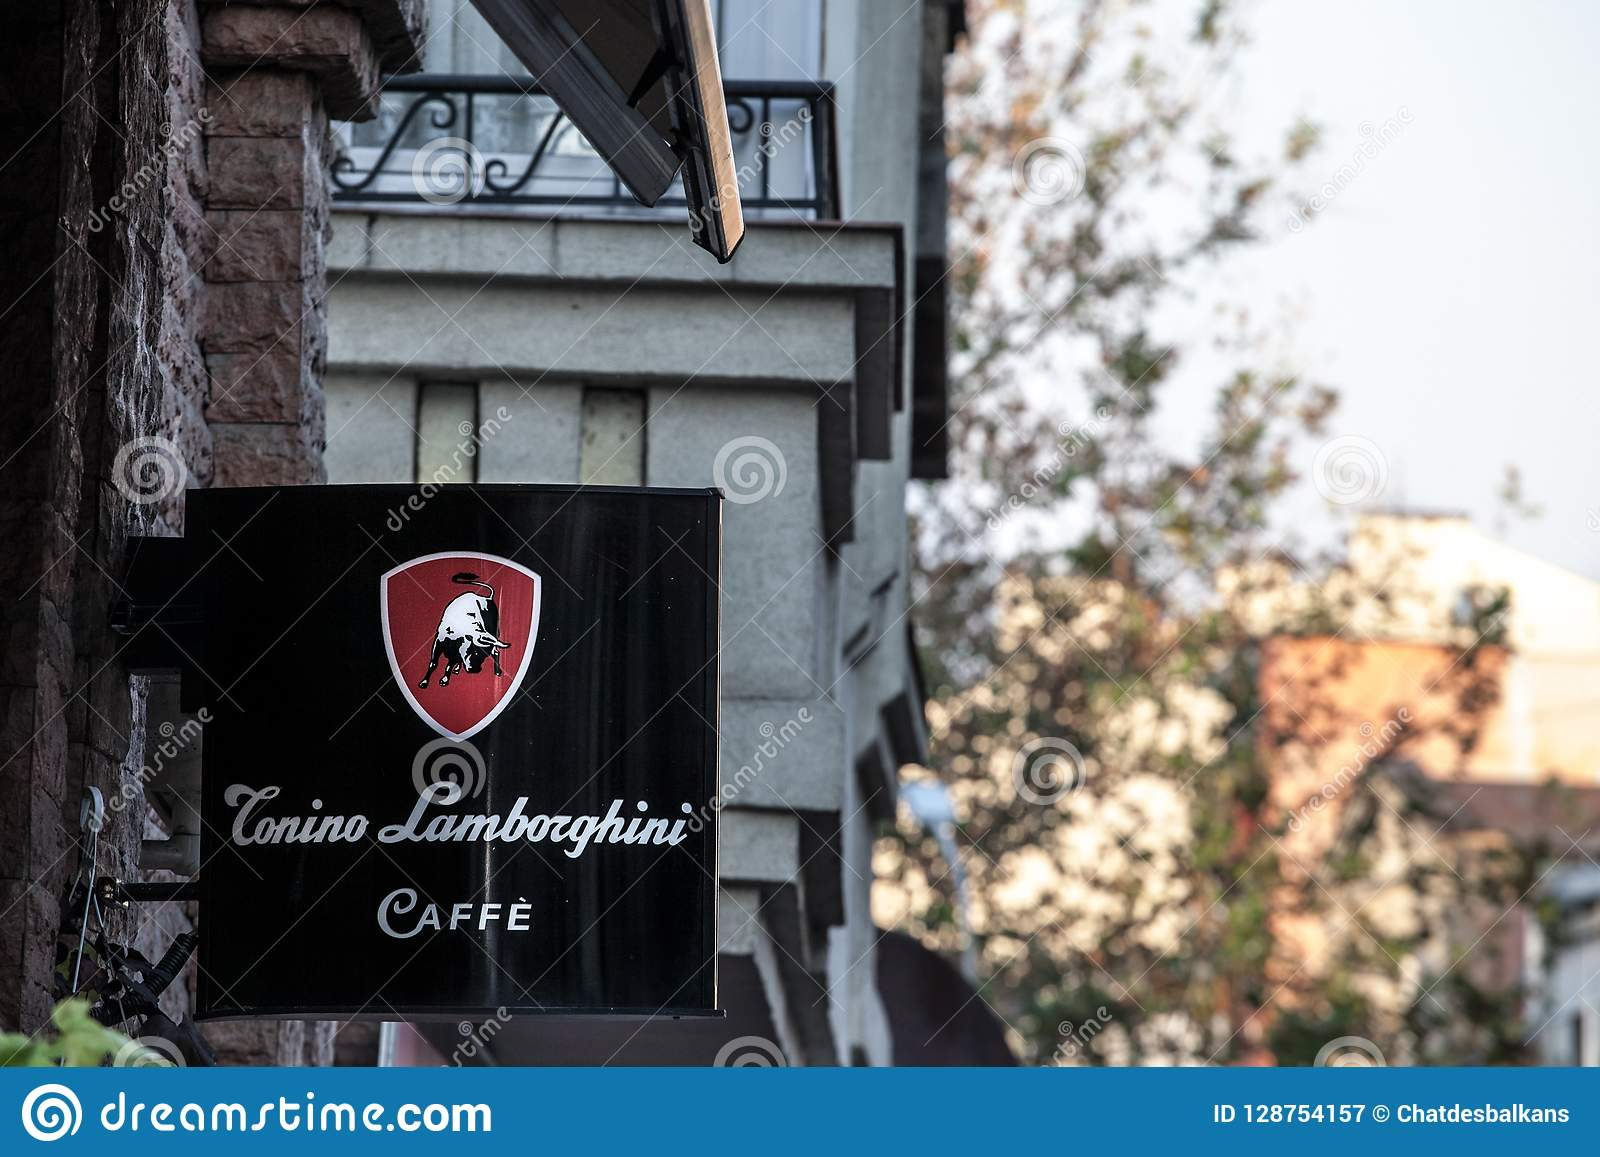 Tonino Lamborghini Caffe Logo Lit On A Cafe Bar Of Belgrade During